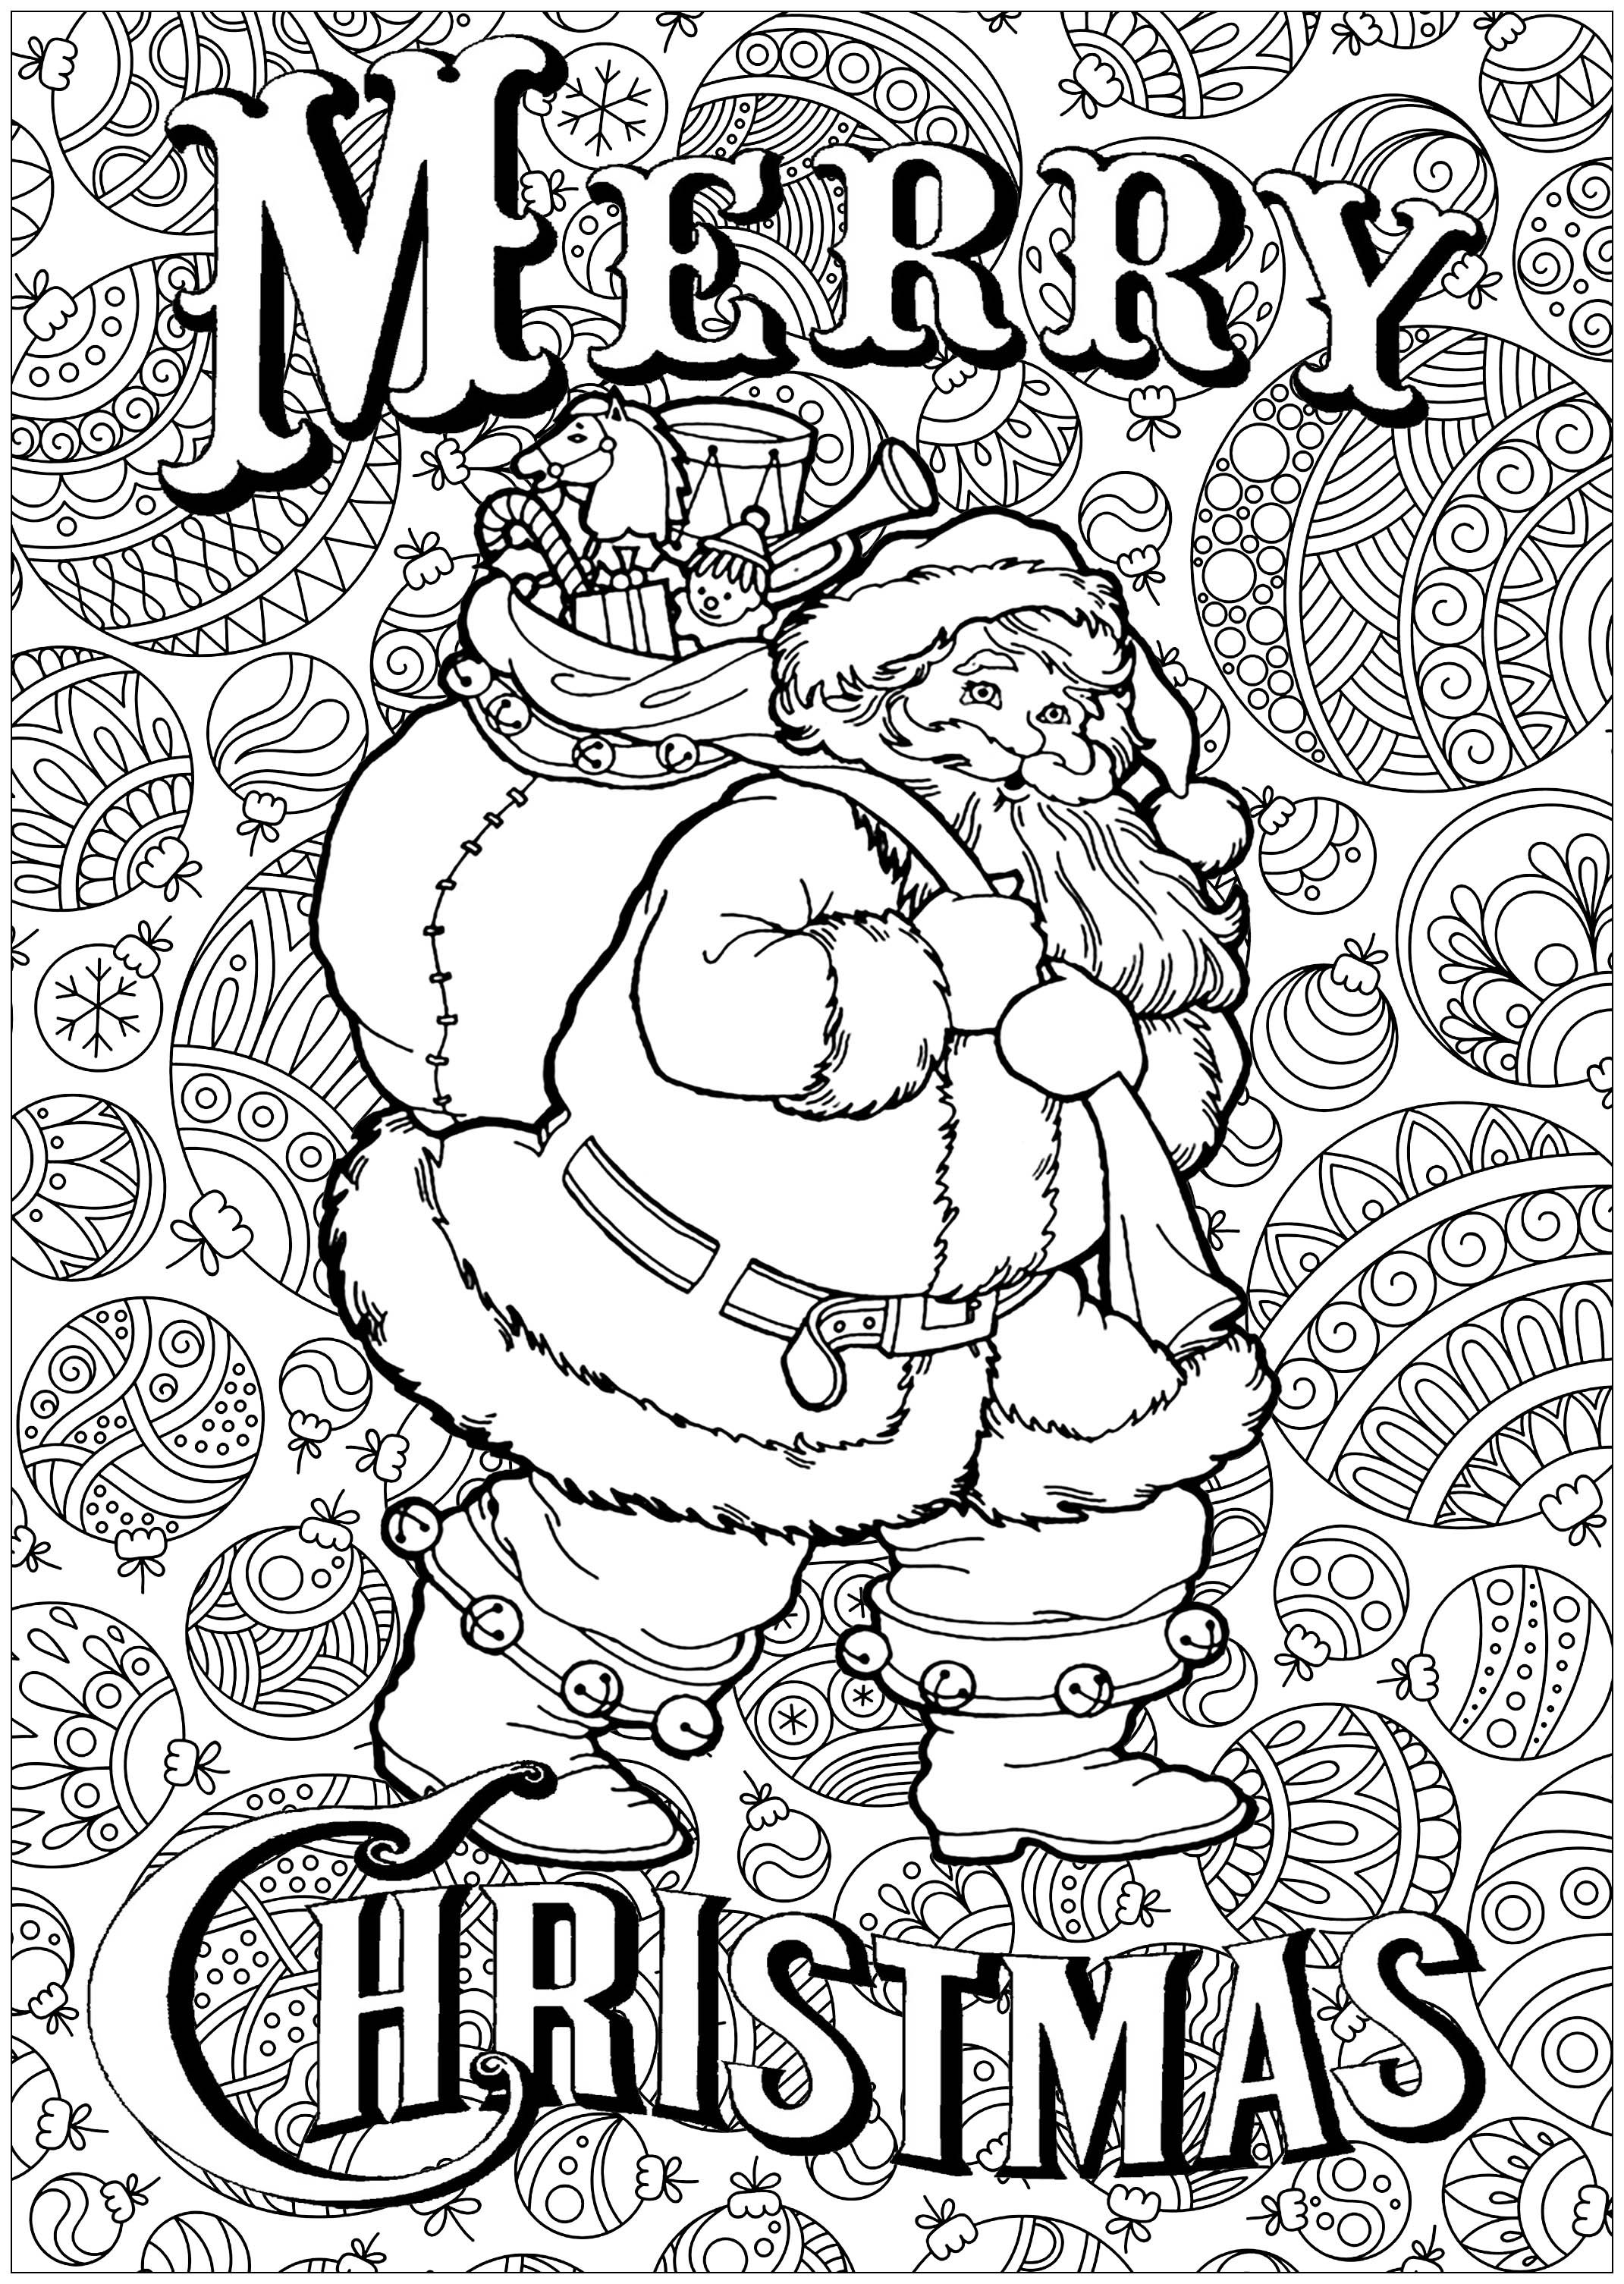 Coloring santa claus with text and background